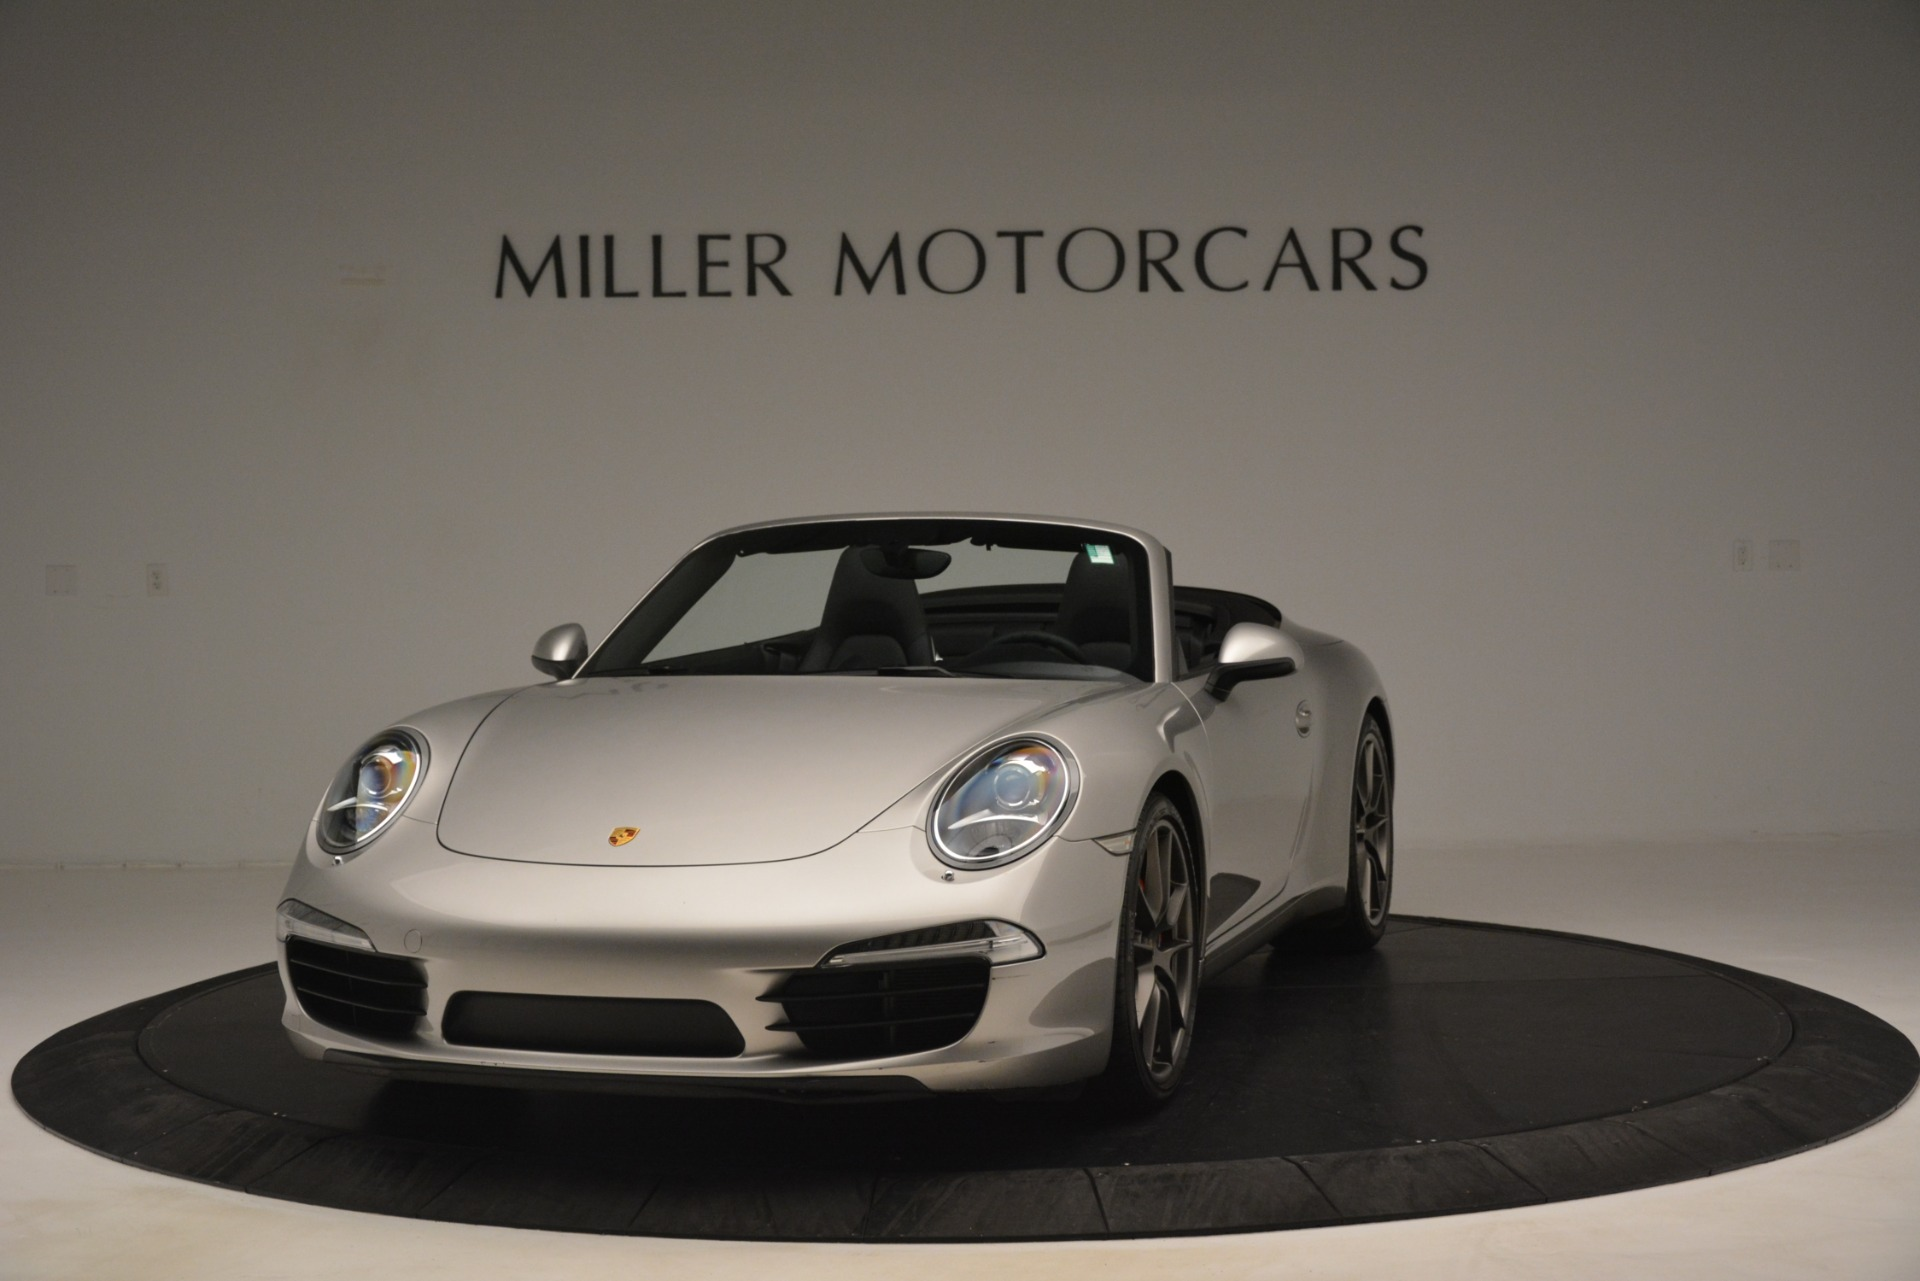 Used 2013 Porsche 911 Carrera S for sale Sold at Bentley Greenwich in Greenwich CT 06830 1